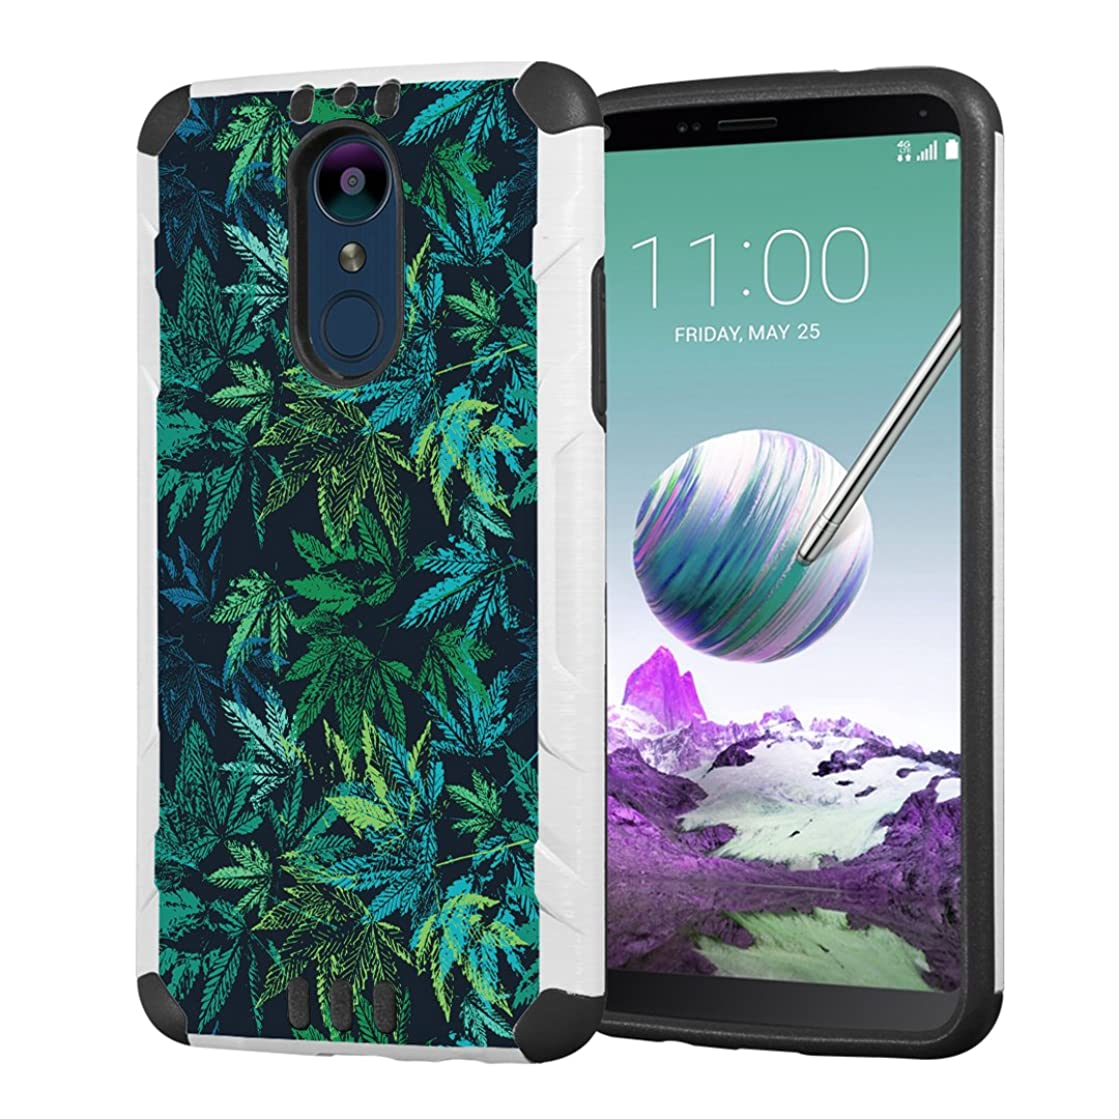 Moriko Case Compatible with LG Stylo 4 Plus, LG Stylo 4, LG Q Stylus [Drop Protection Hybrid Dual Layer Armor Protective Dual Layer Case White] for LG Stylo 4 - (Green Leaf)